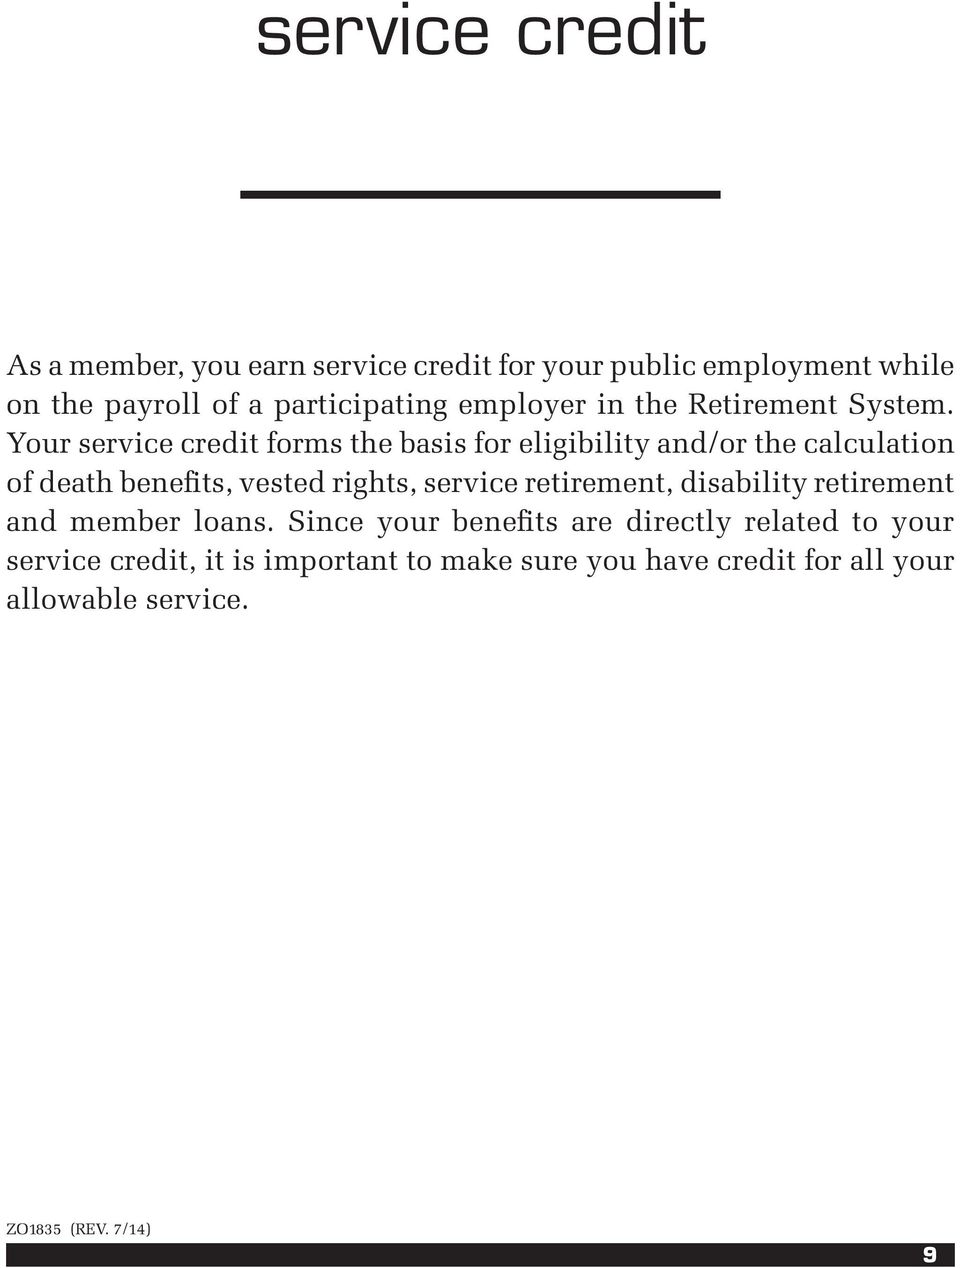 Your service credit forms the basis for eligibility and/or the calculation of death benefits, vested rights, service